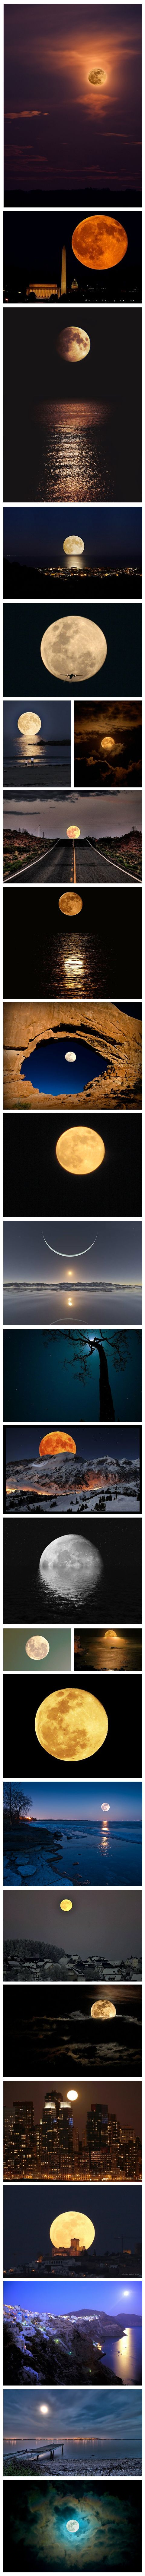 A collection of the best moon images